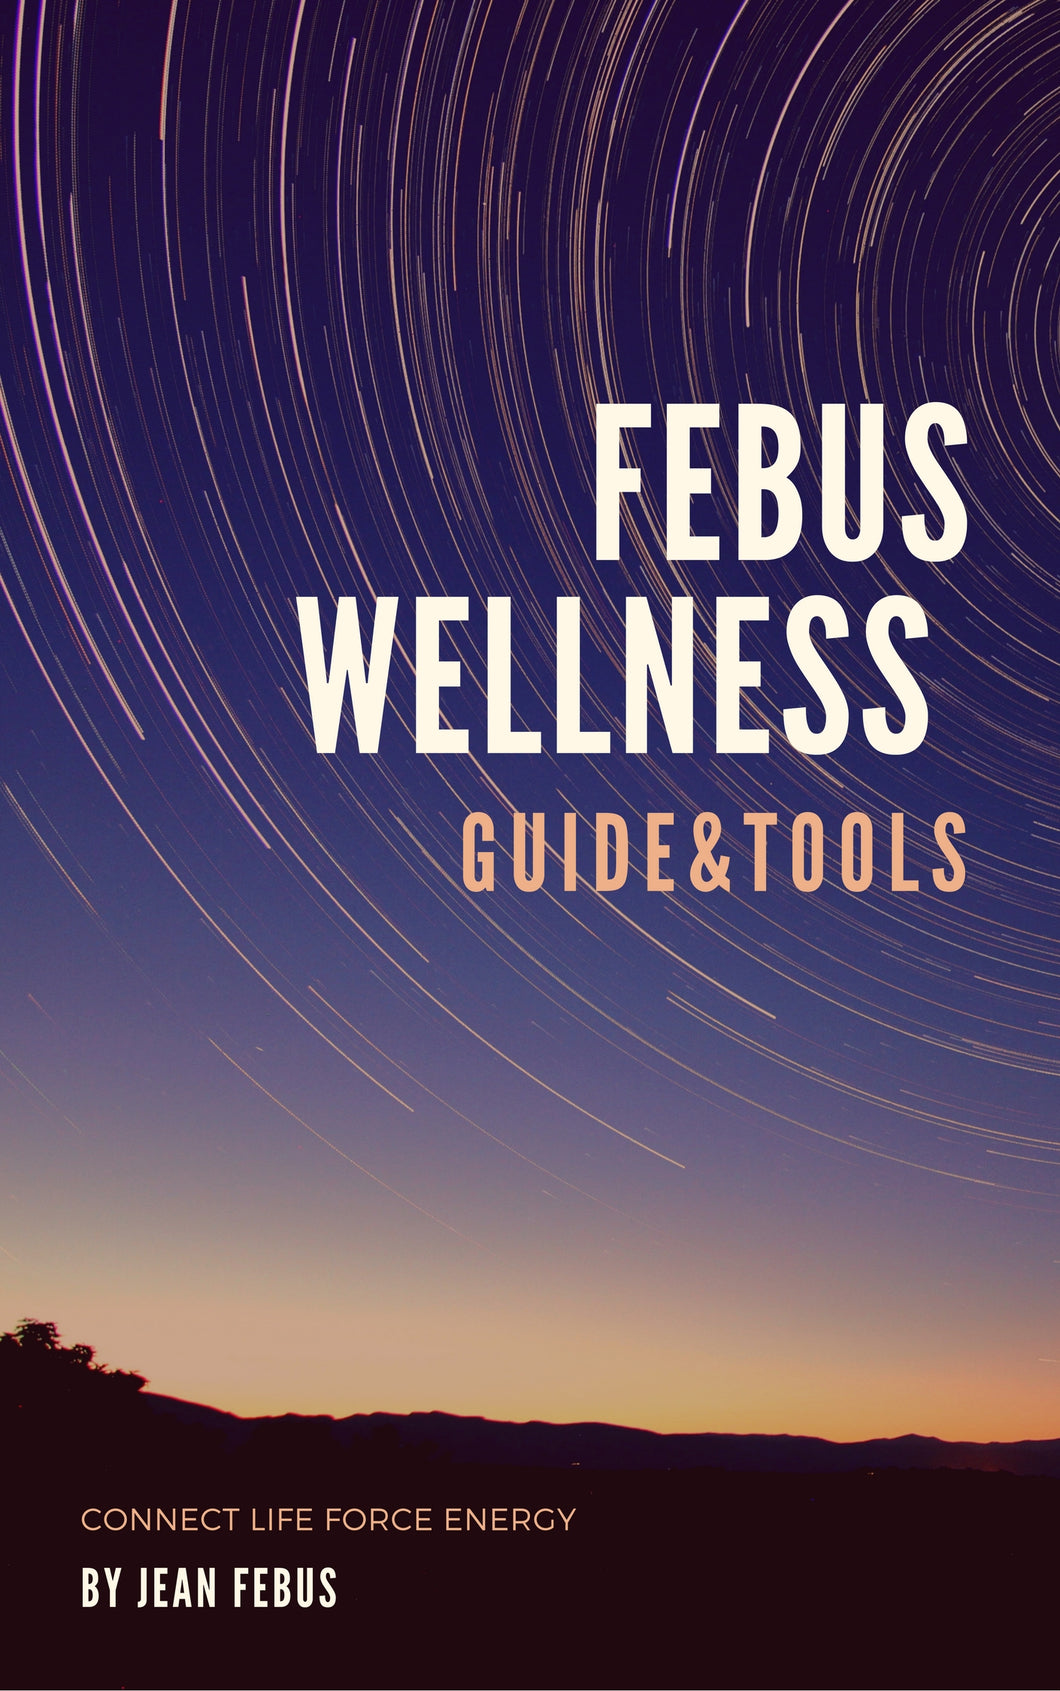 Jeans febus wellness books